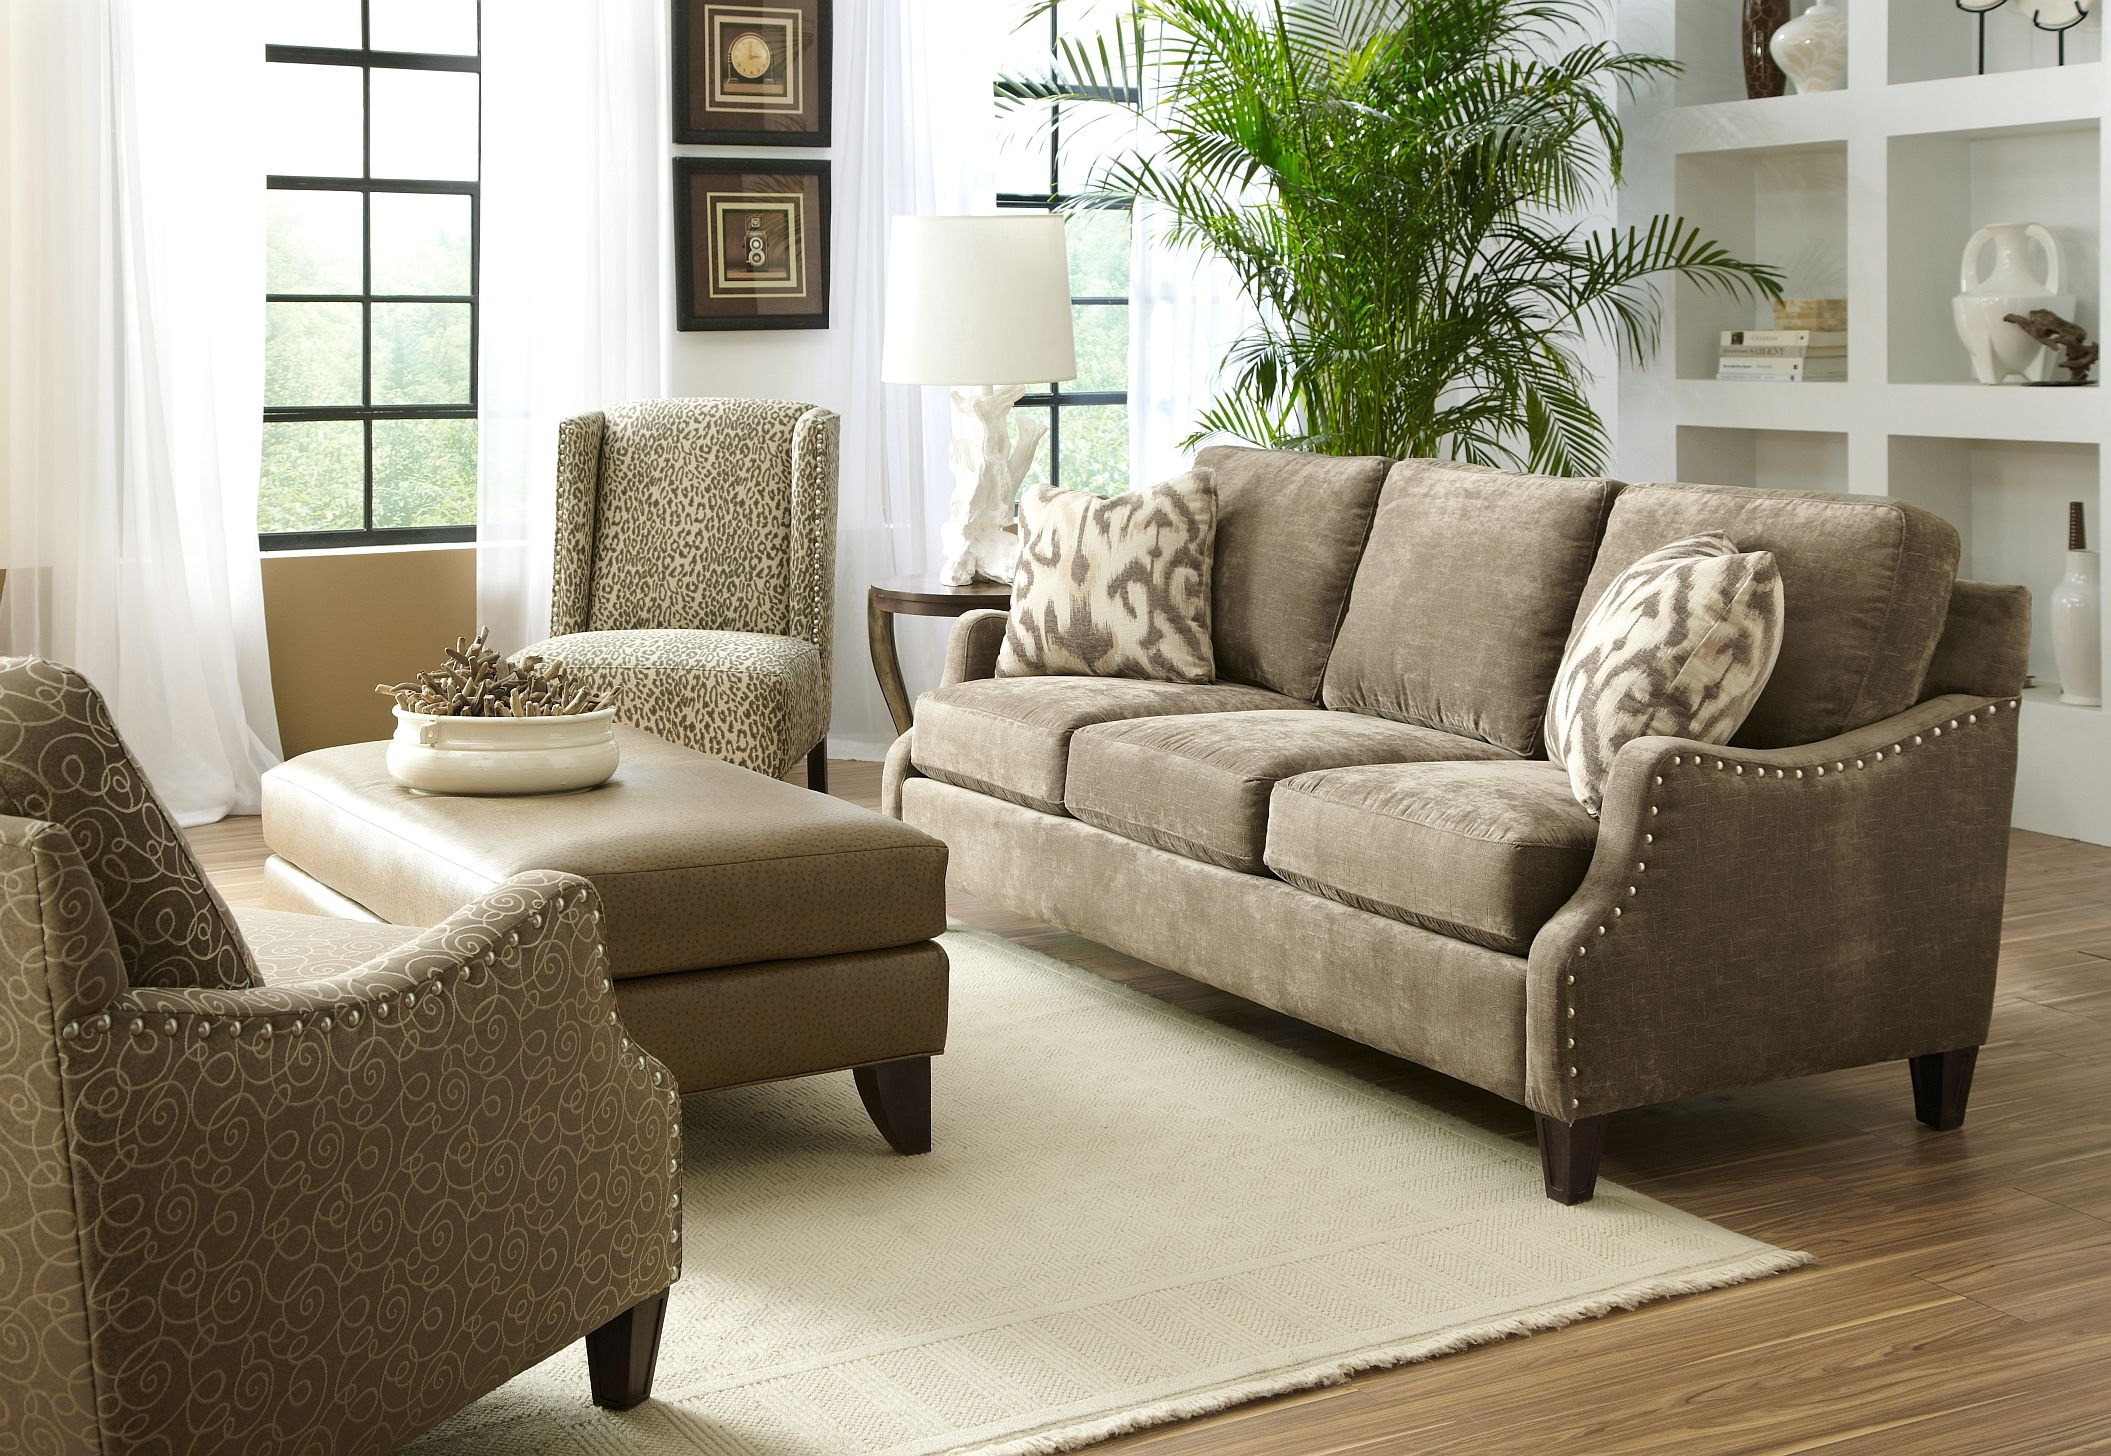 Craftmaster Furniture Essentials Comfortable Seating With Beautiful  Fabrics. Www.cmfurniture.com | Essentials | Pinterest | Living Rooms,  Living Spaces And ...